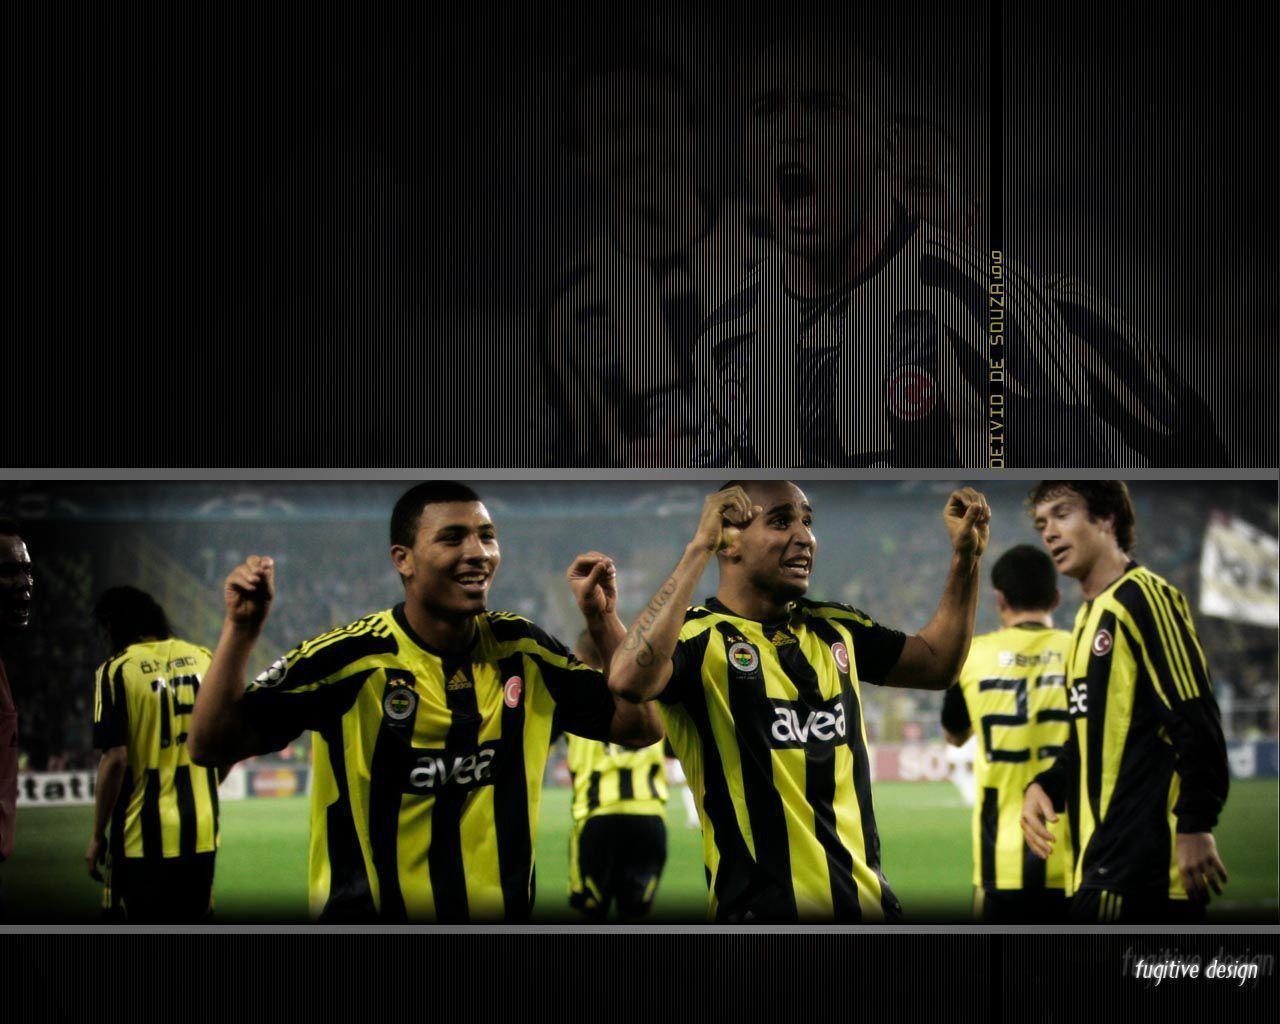 Fenerbahçe SK images 23512erfw HD wallpaper and background photos ...